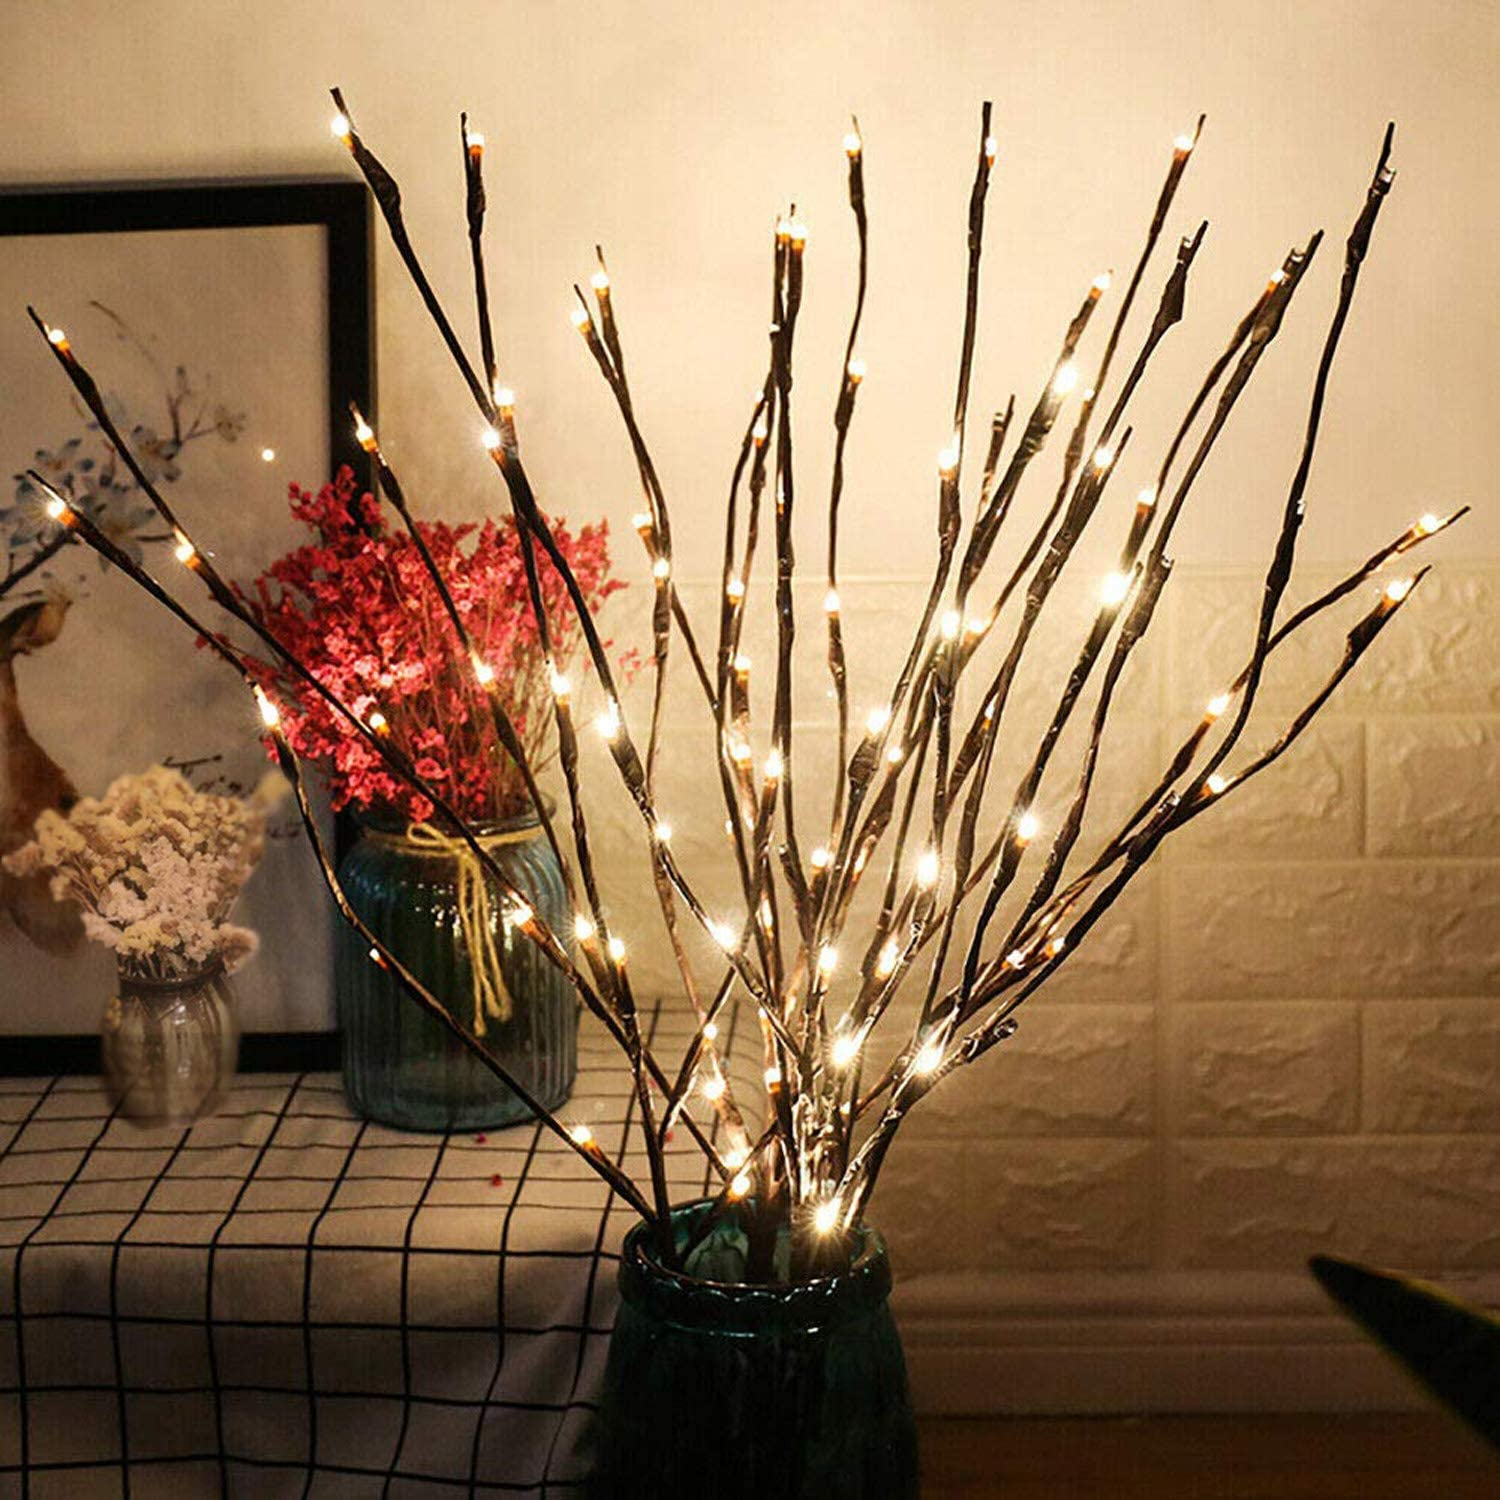 2 Pack LED Branch Lights, Battery Powered Decorative Lights String, Willow Twig Lighted Branch for Home Decoration Warm White 20 Inches